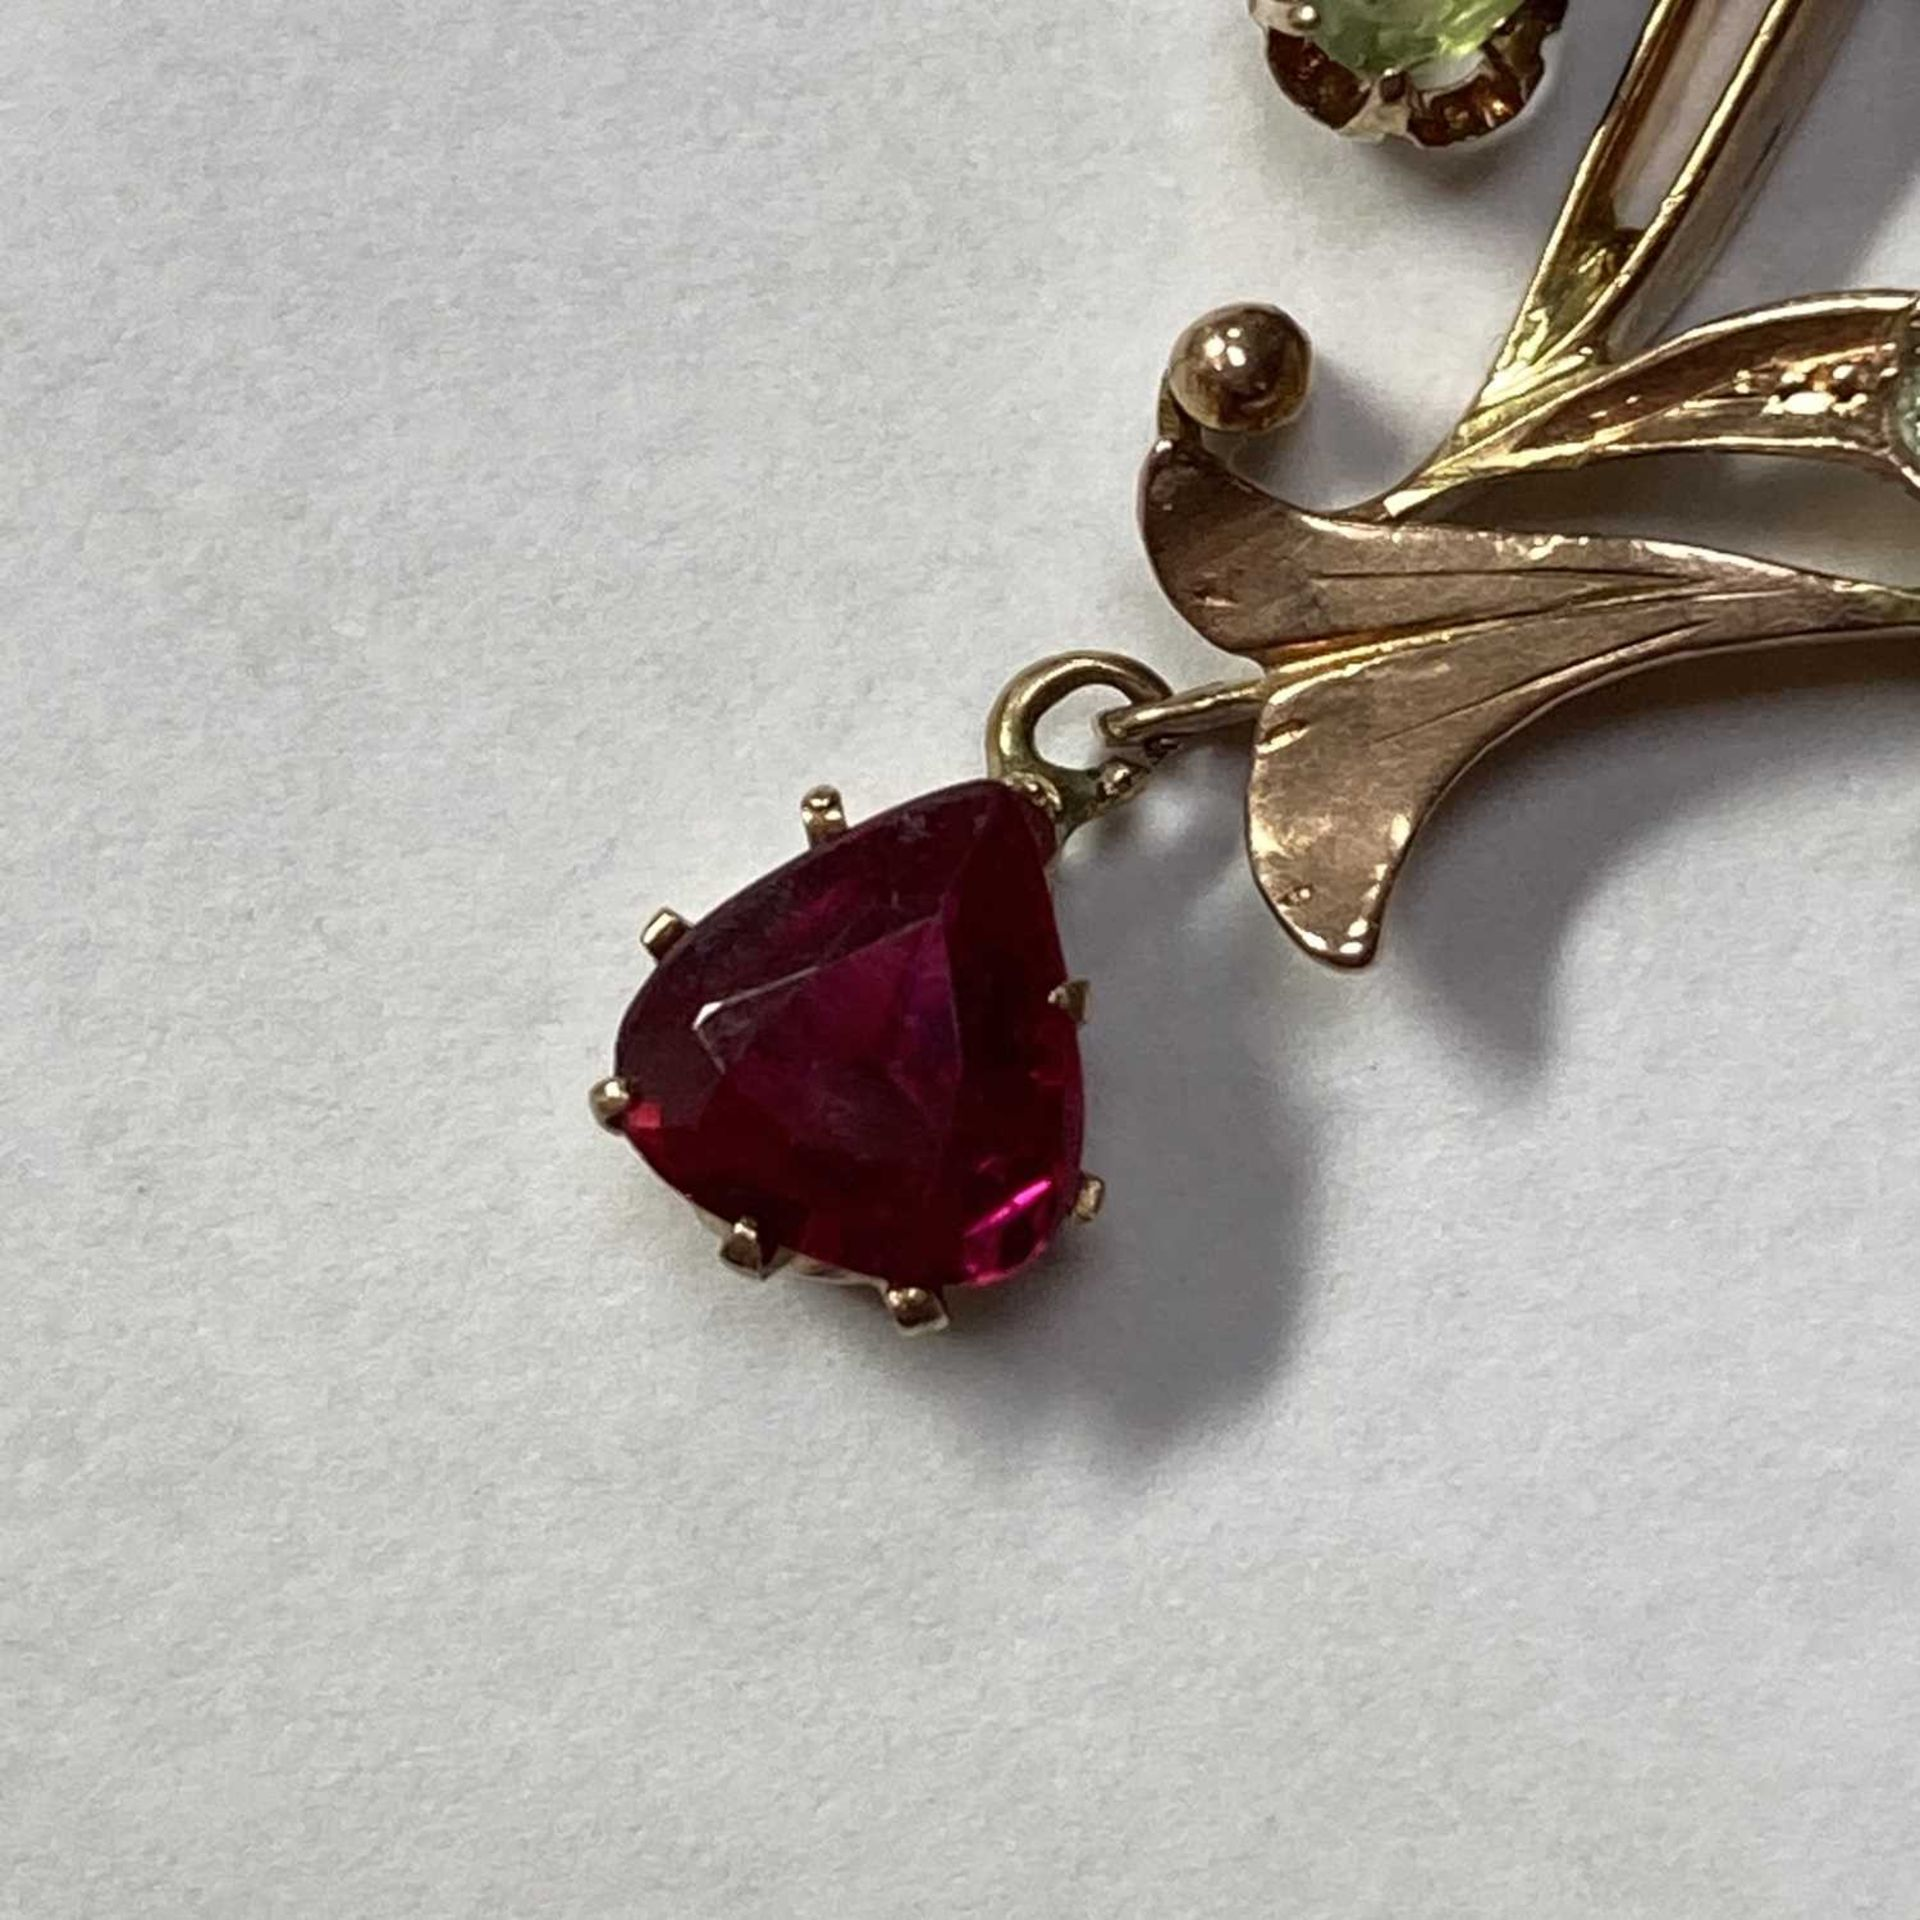 A Russian gold demantoid garnet and synthetic ruby pendant, - Image 3 of 5